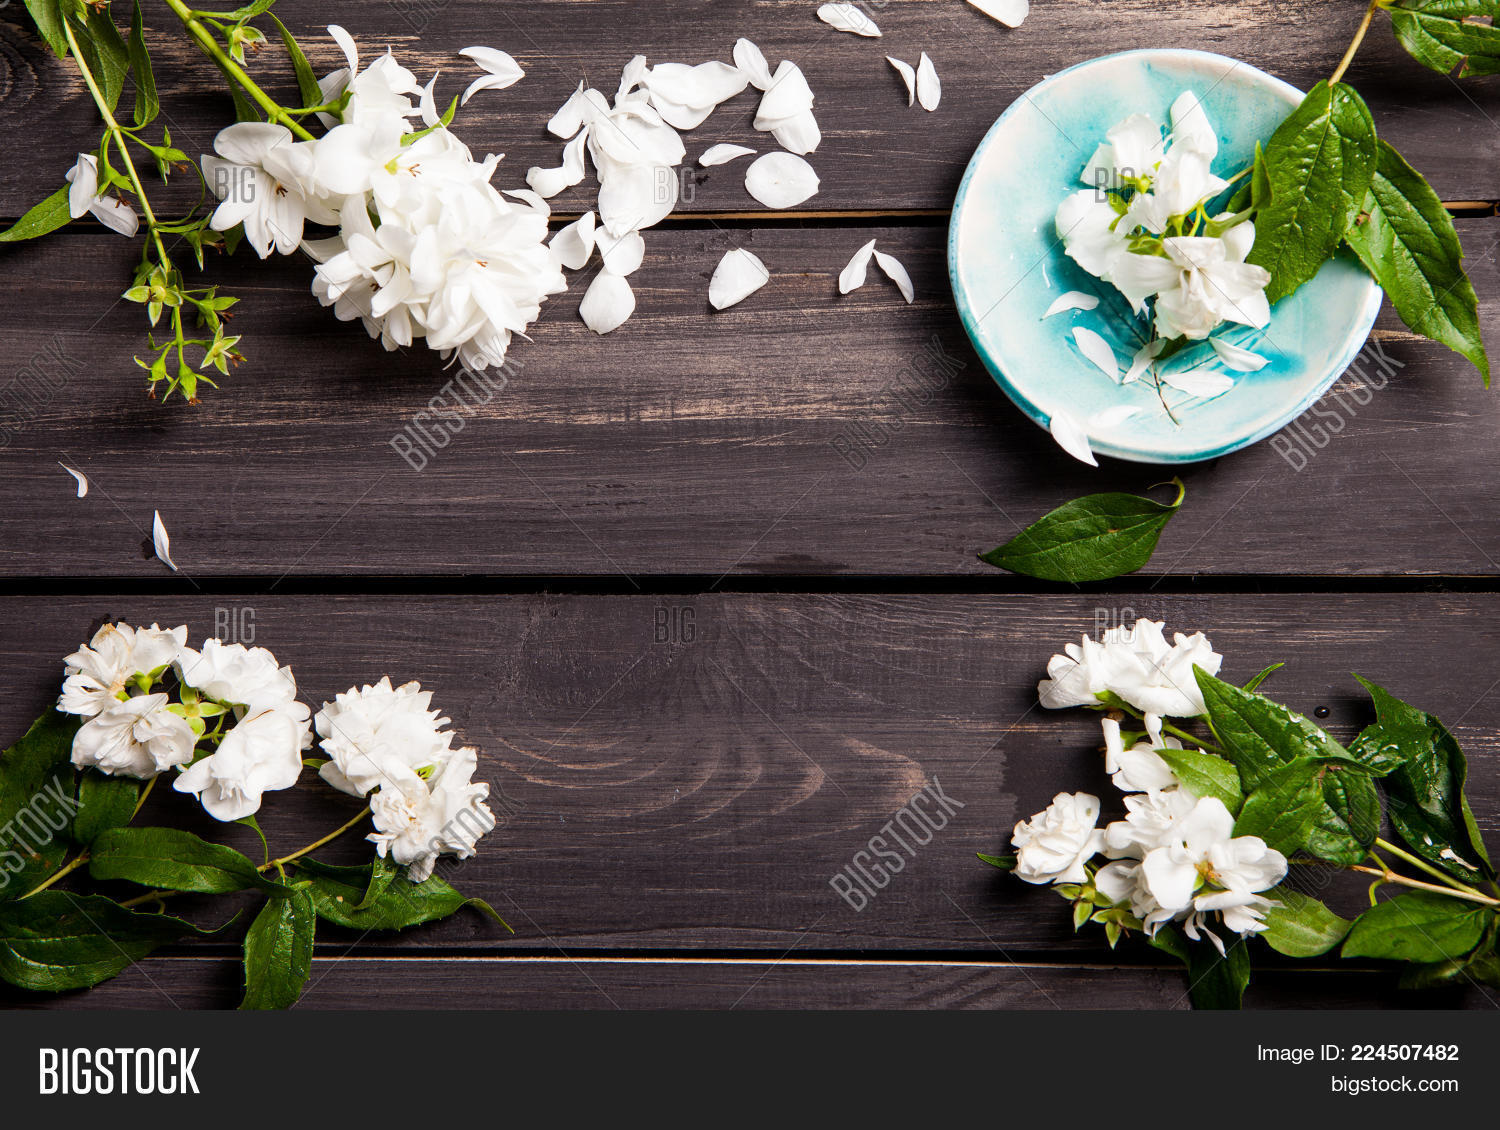 White Flowers Jasmine Image Photo Free Trial Bigstock